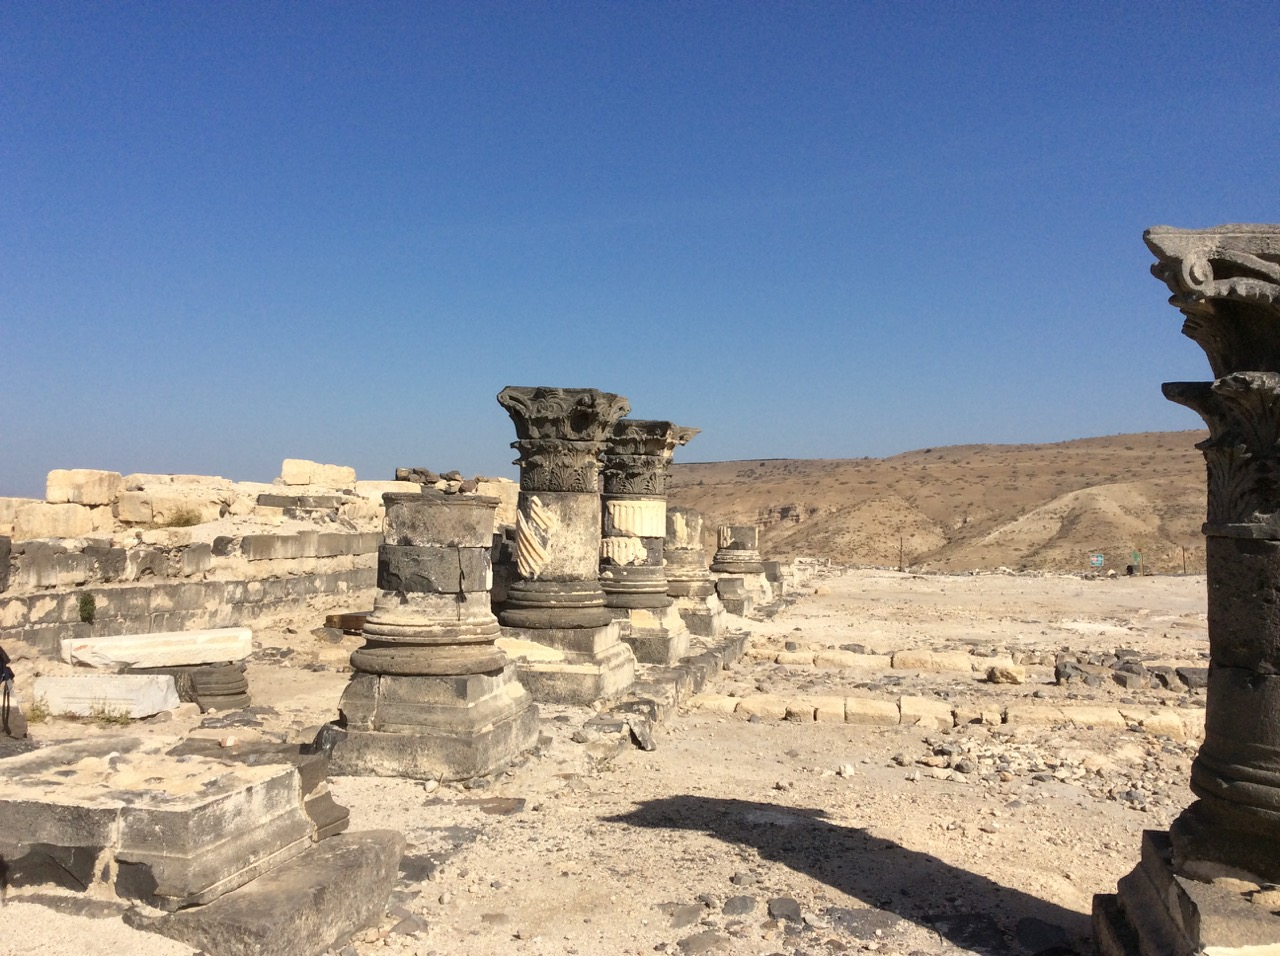 Among the ruins of Susita in the Golan Heights, Israel.